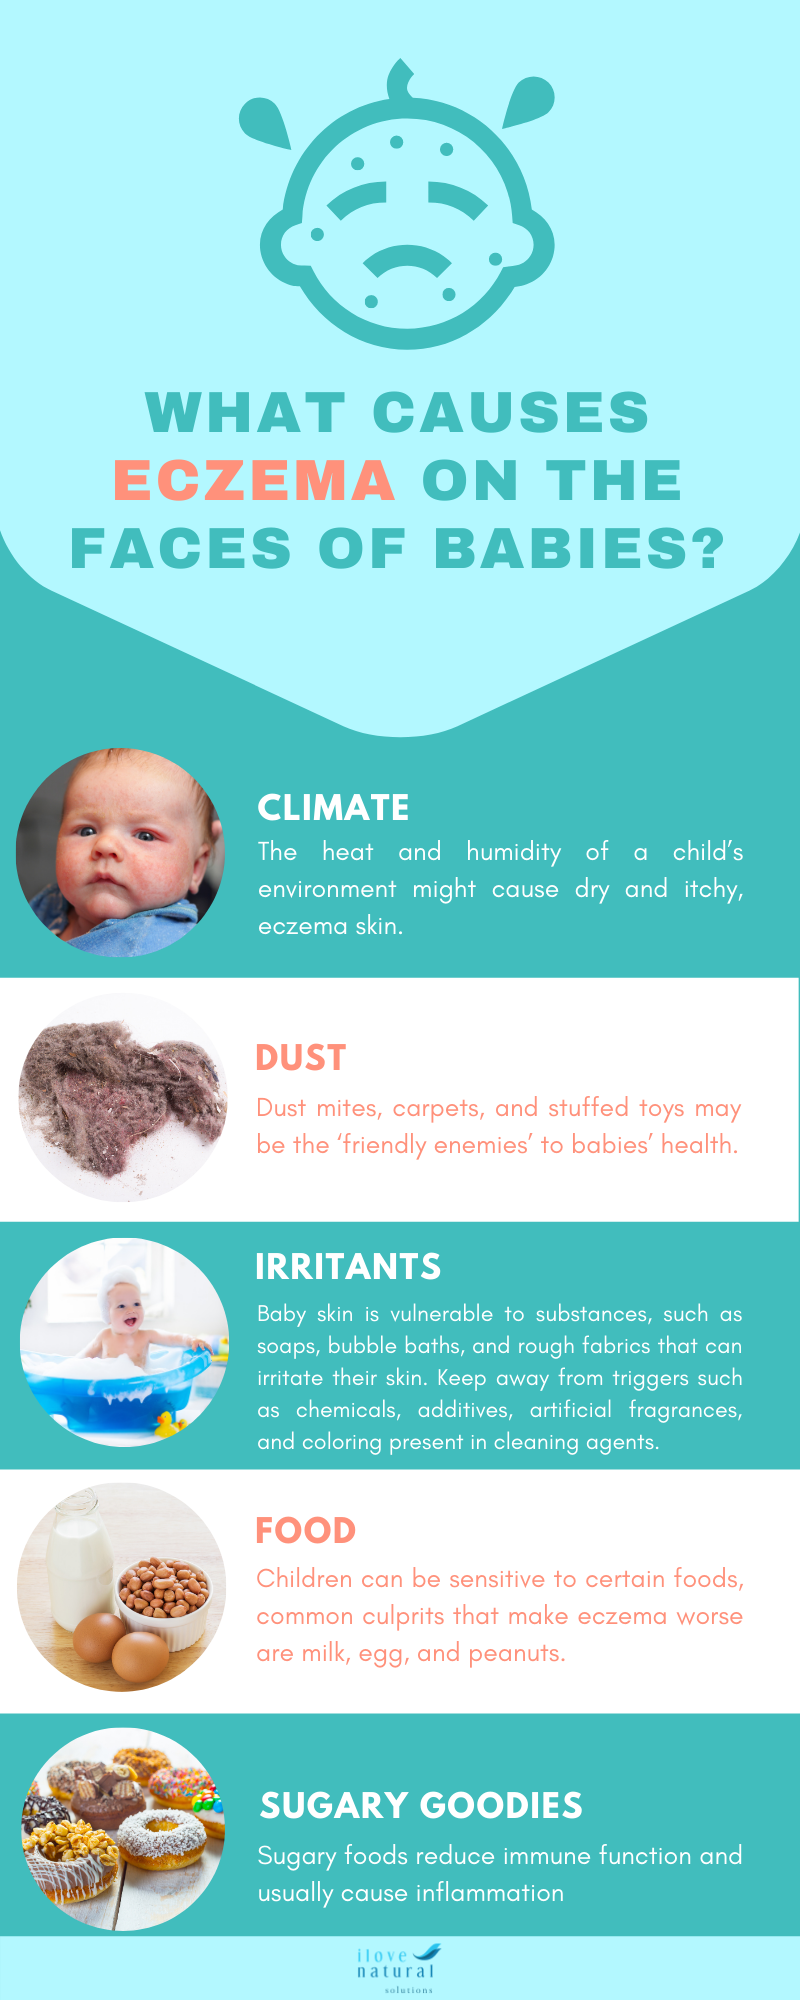 What Causes Eczema on Faces Of Babies | ilovenatural.store